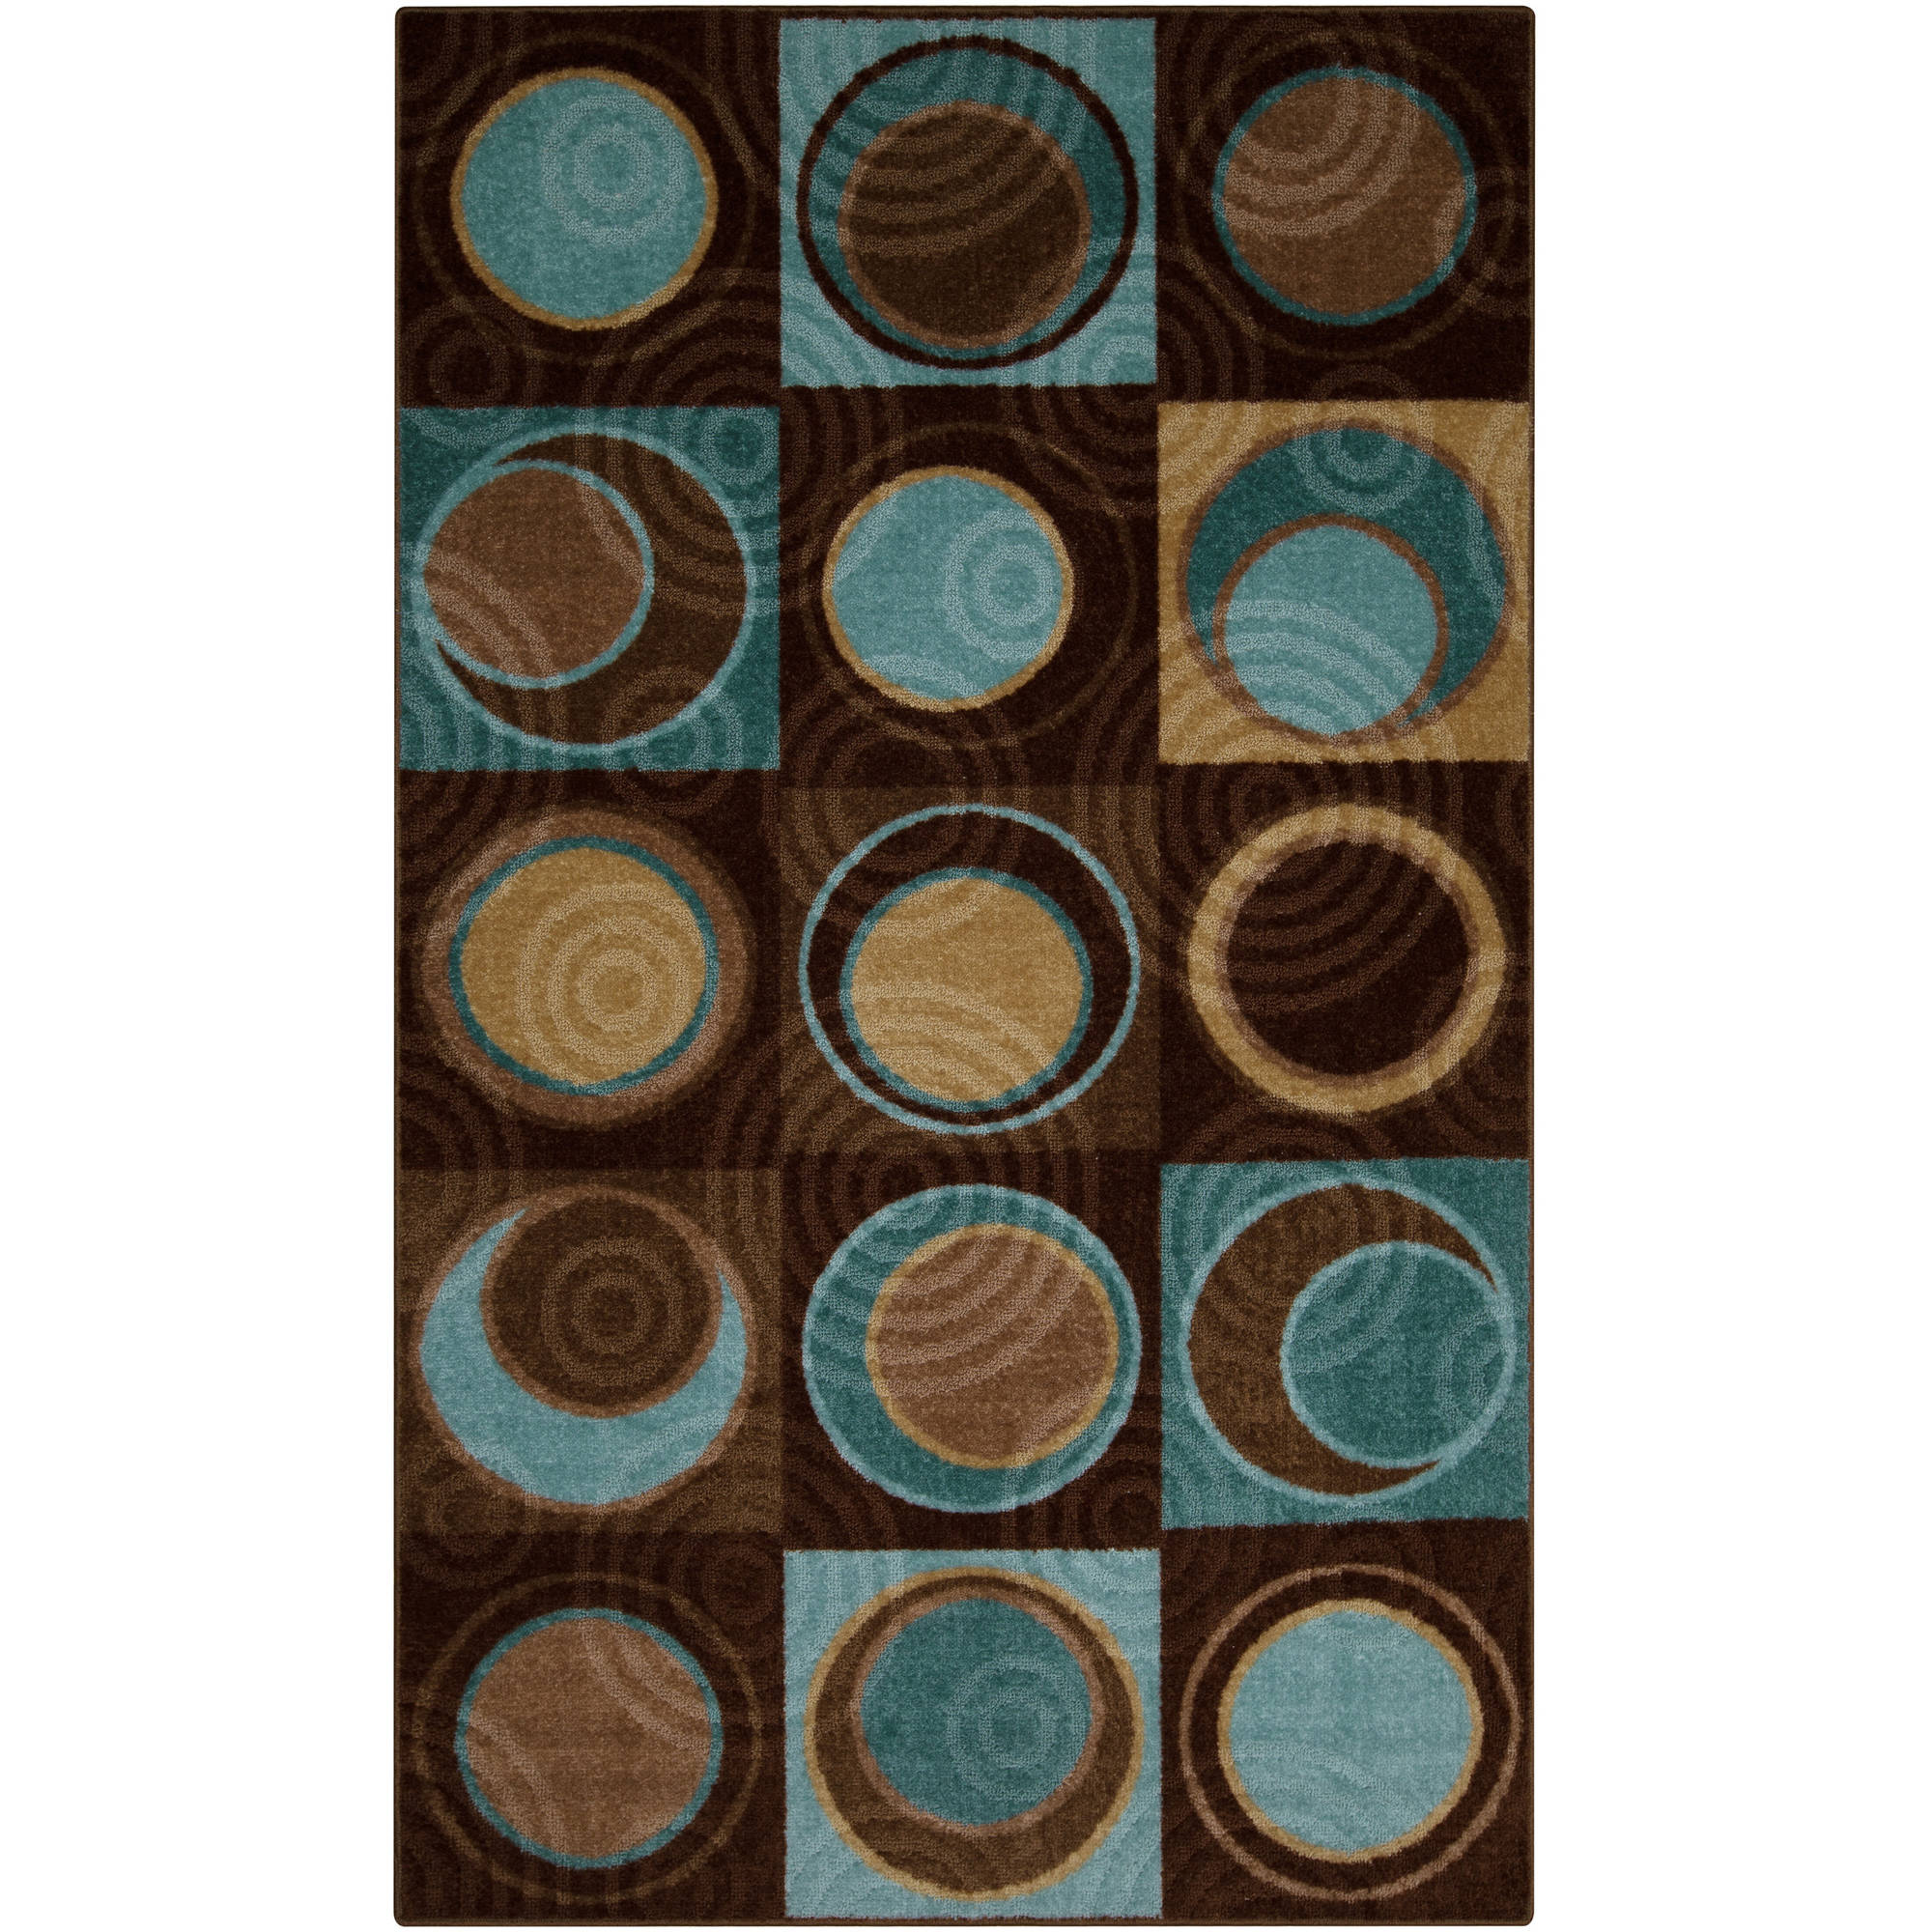 Circle Area Rugs Home Decor